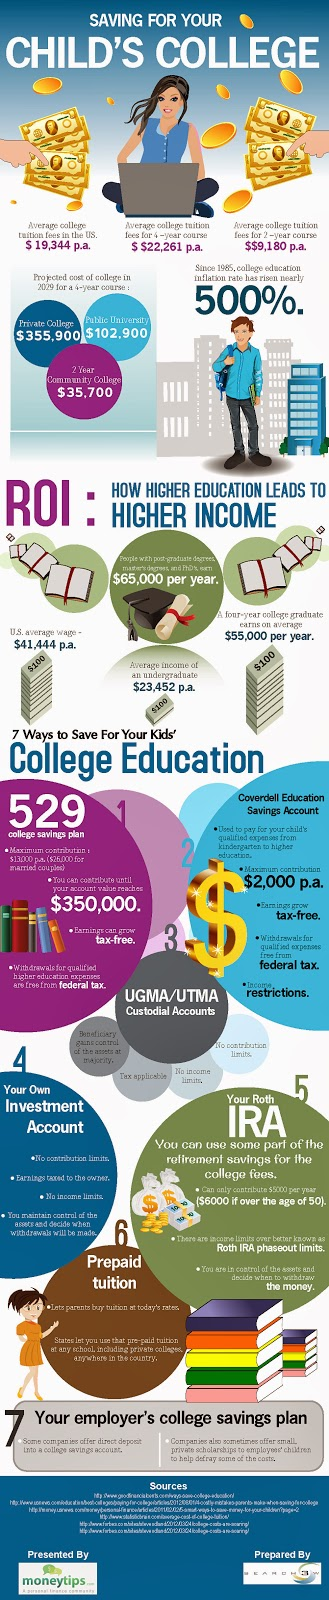 money tips 7 - Saving For Your Child's College